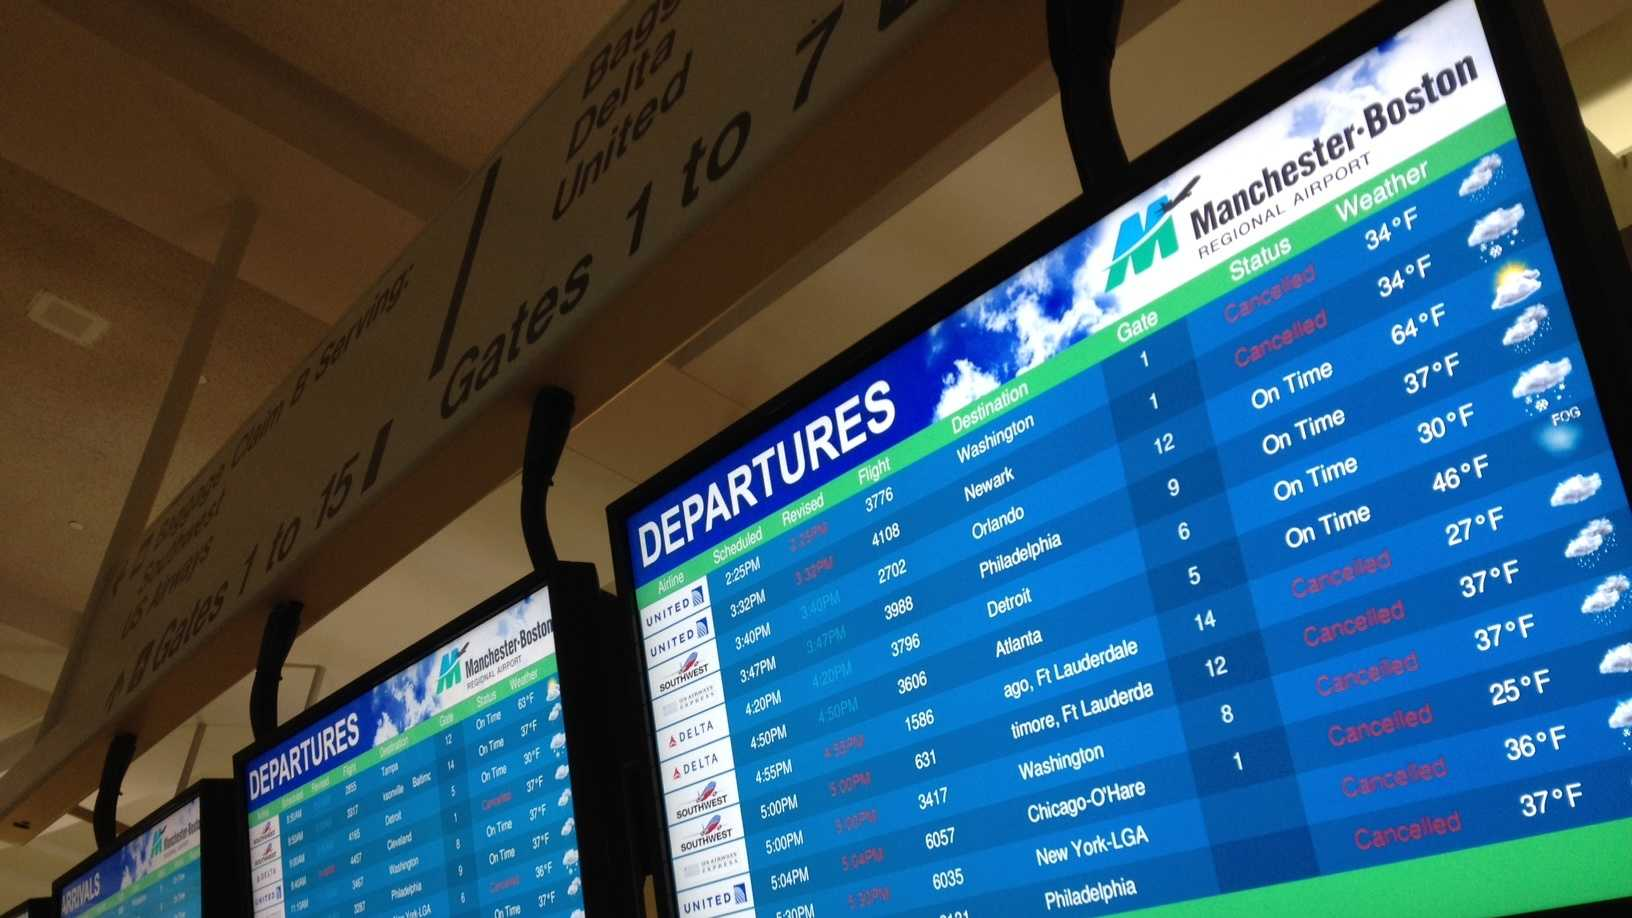 Manchester airport cancellations